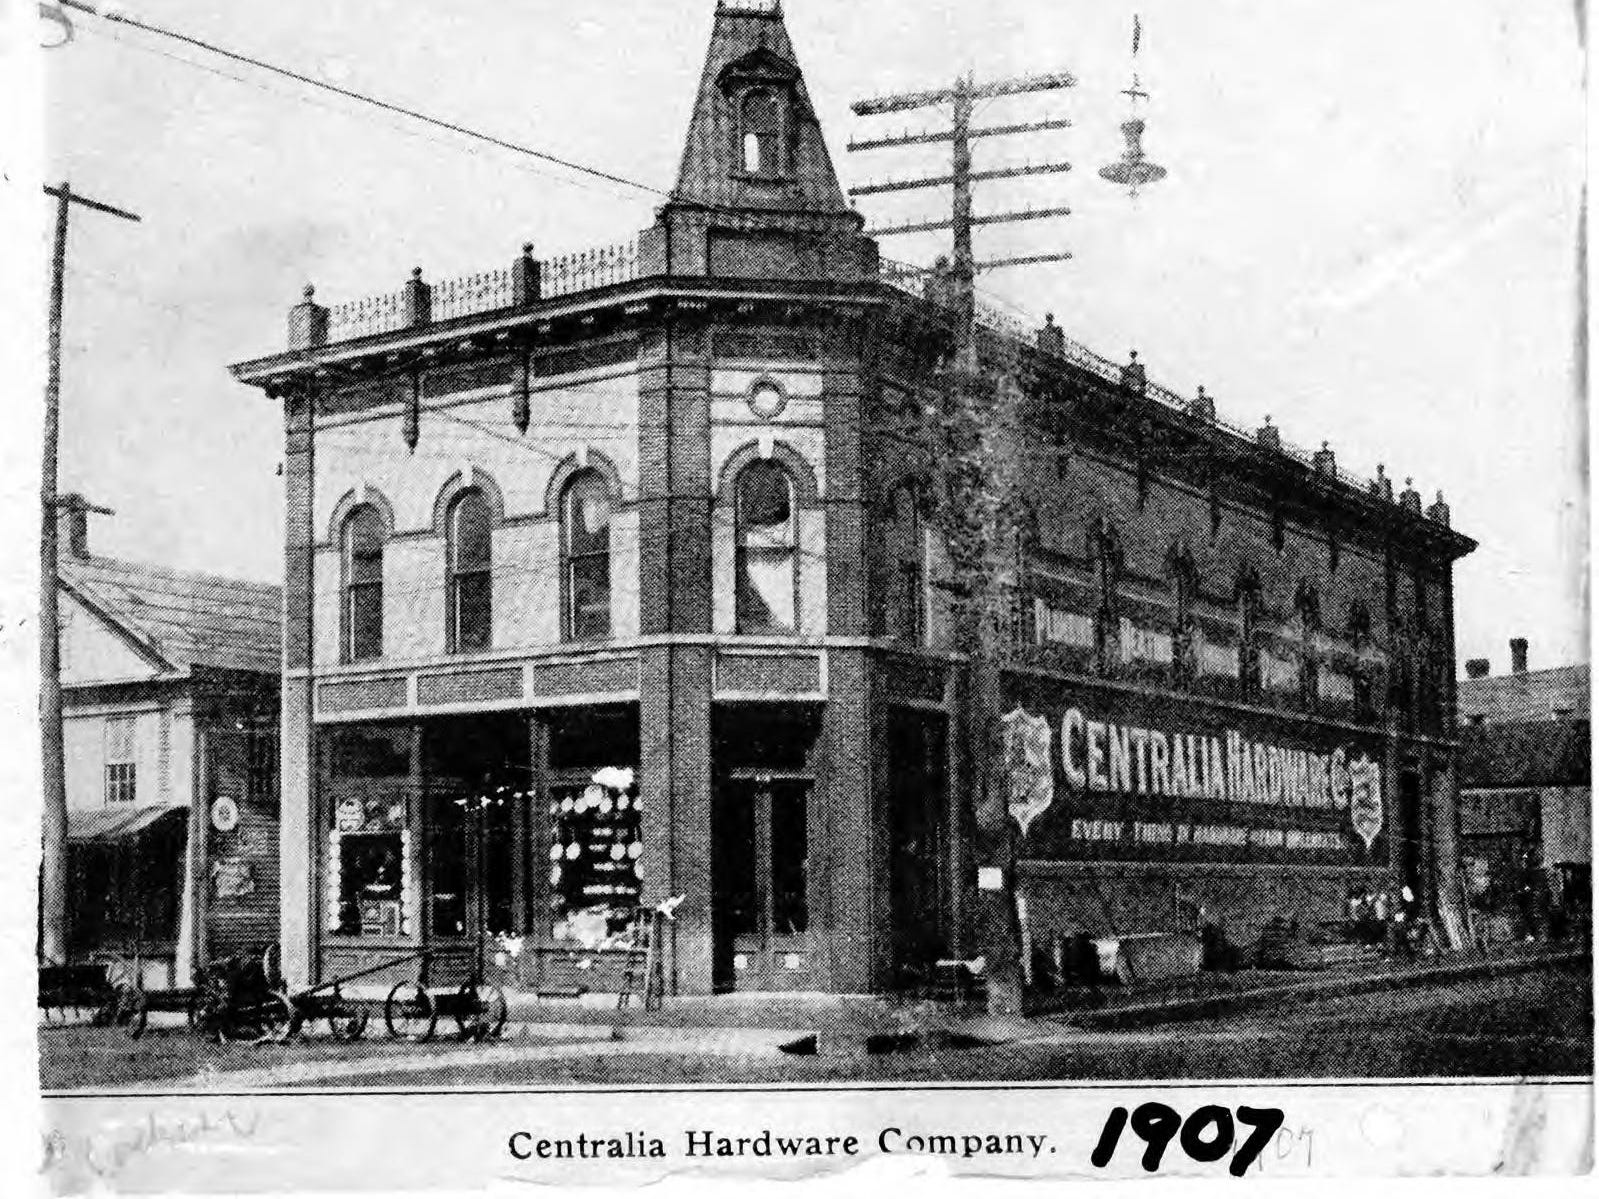 Centralia Hardware Company in 1907 in downtown Wisconsin Rapids